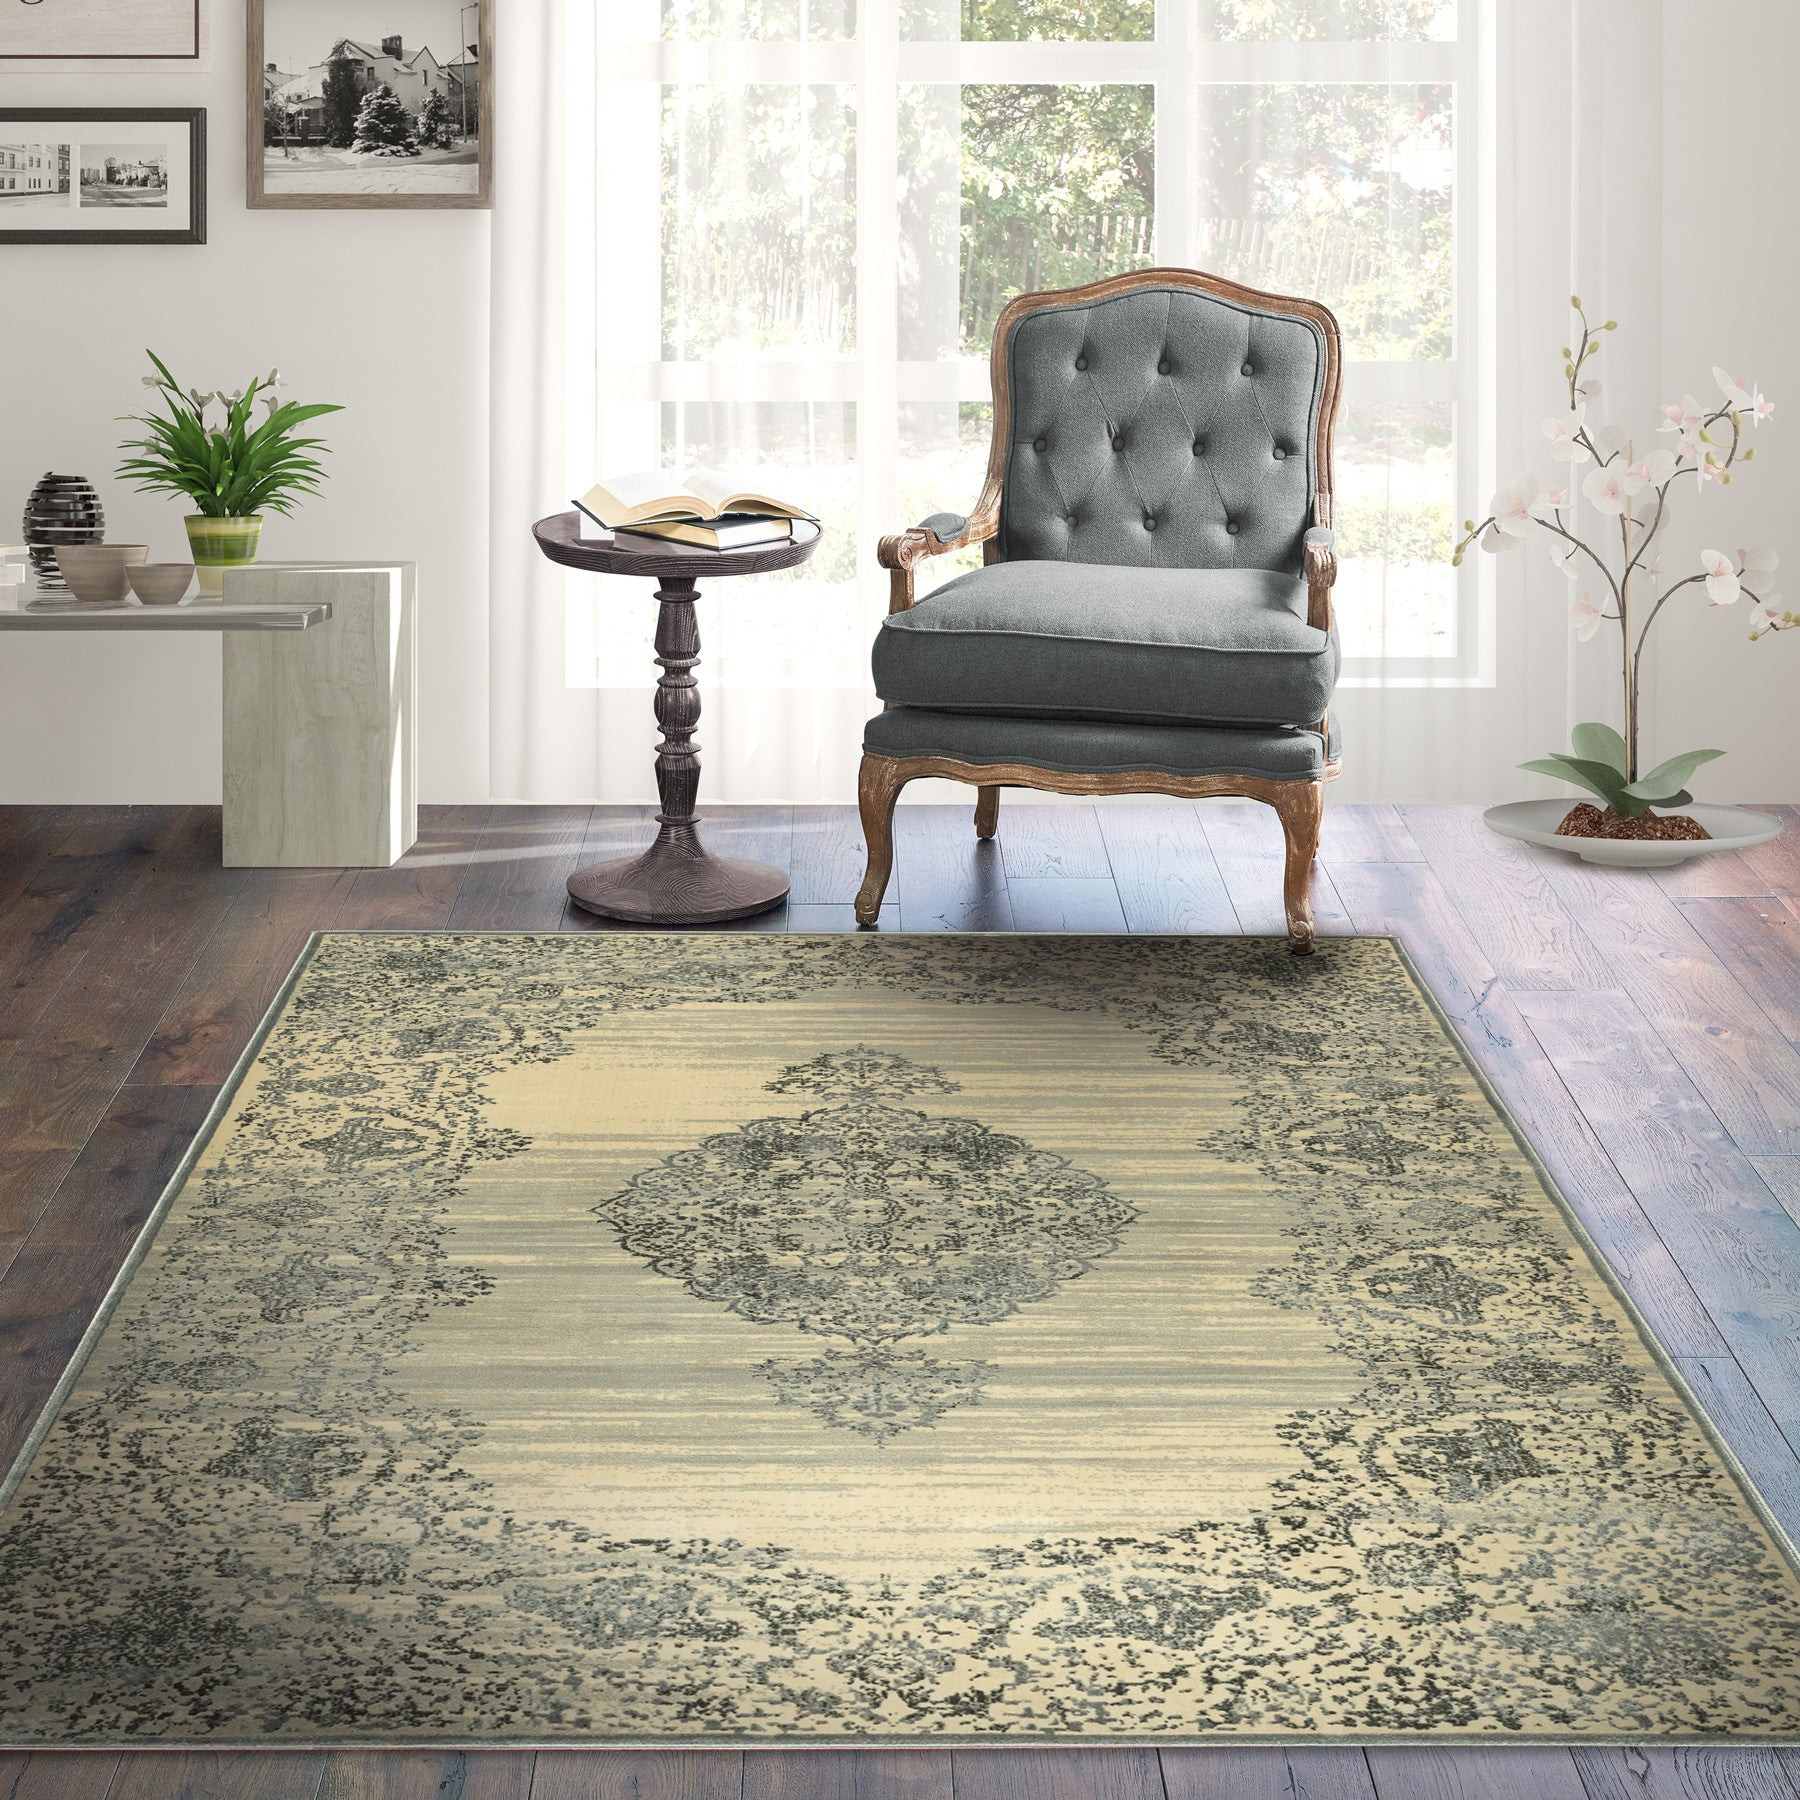 5 Things to Look for in a Vintage Rug